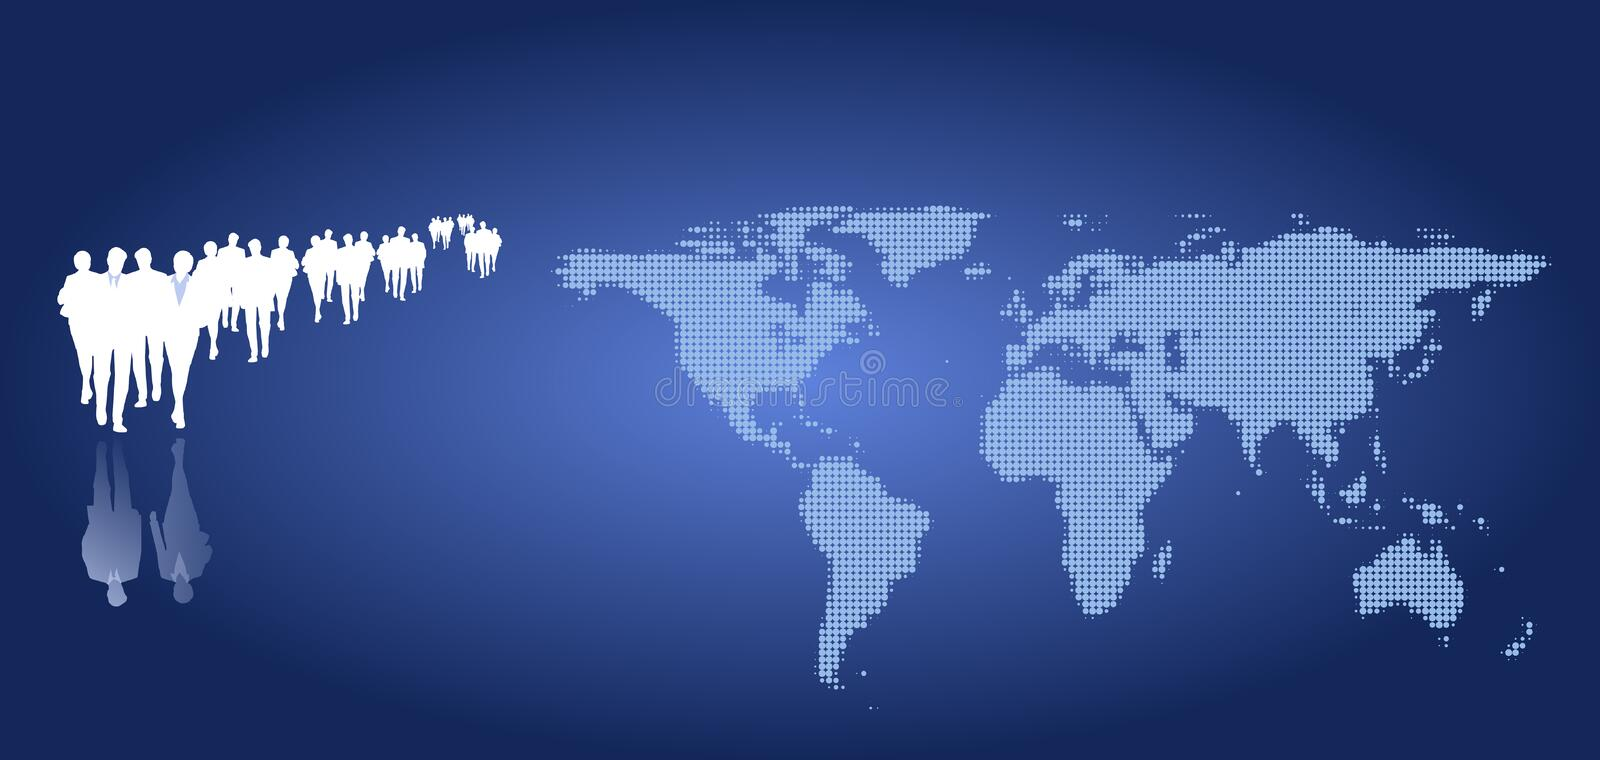 Download Illustration Of A Business Team Stock Images - Image: 16505764